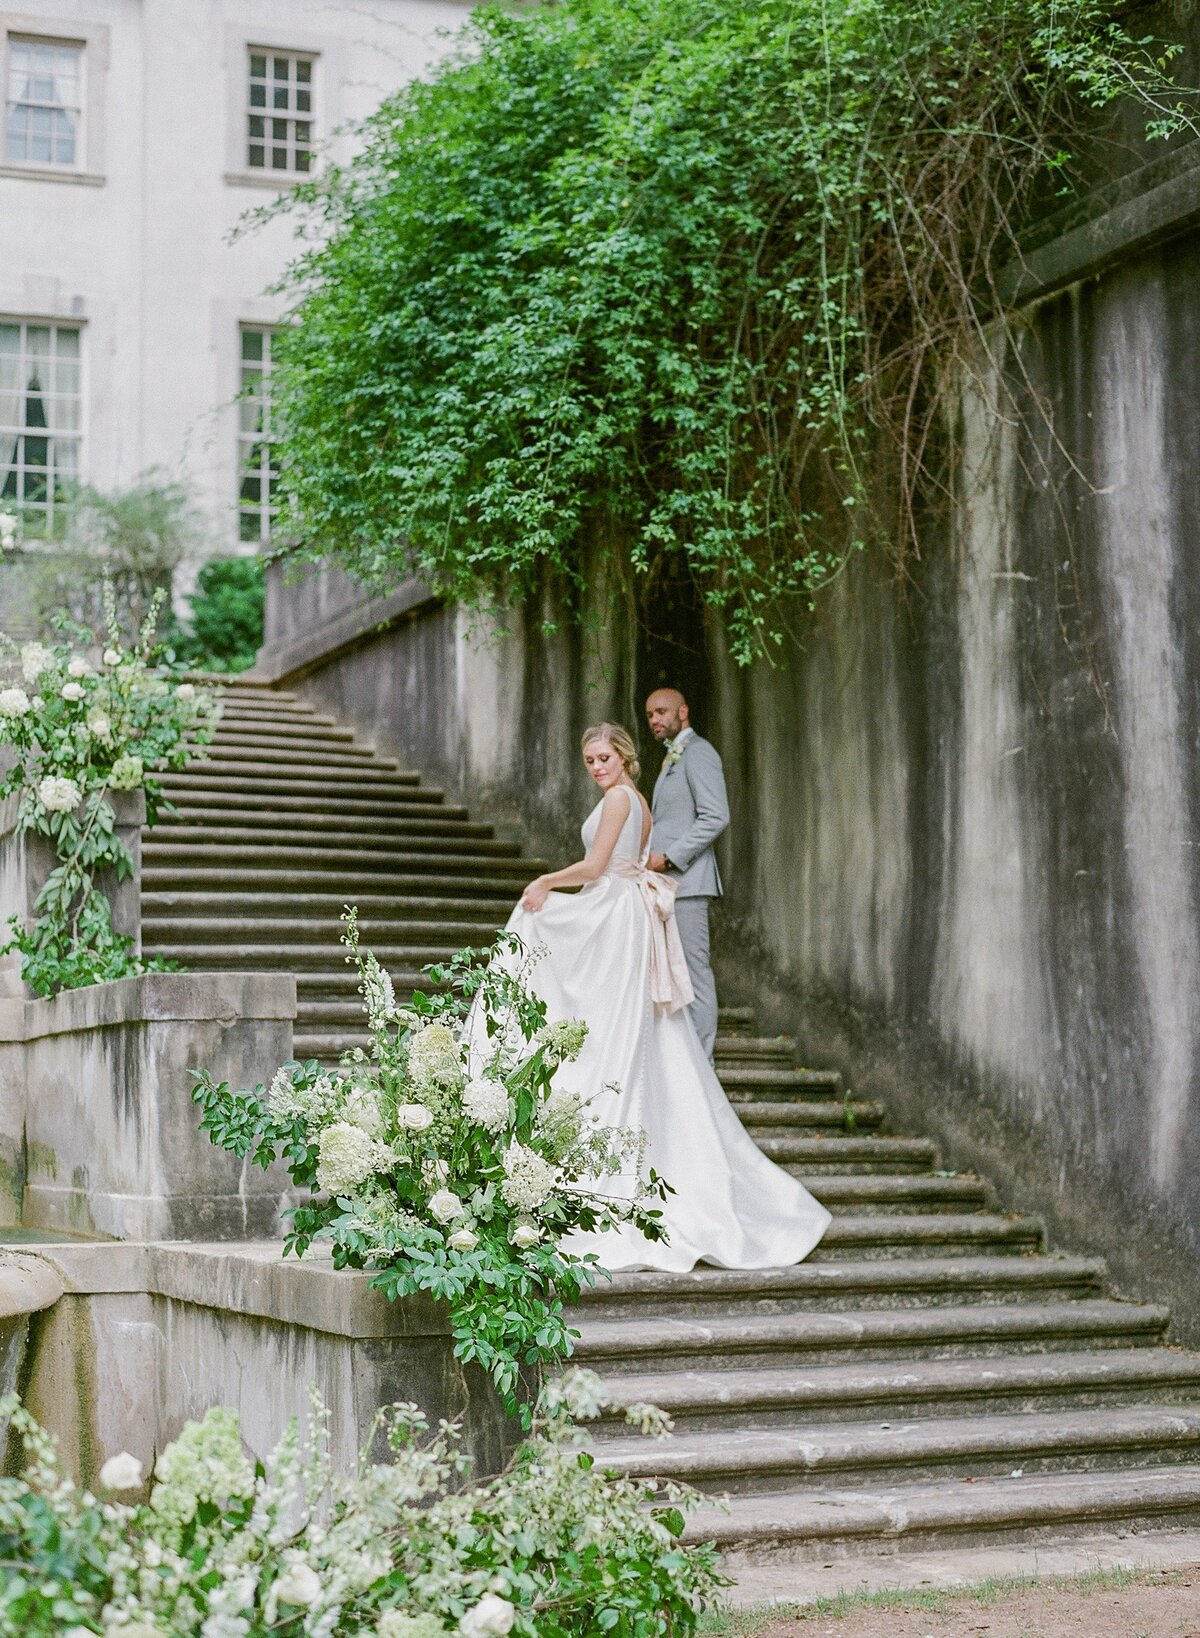 Birmingham-Alabama-Wedding-Photographer_Swan-House-Atlanta-Wedding_79